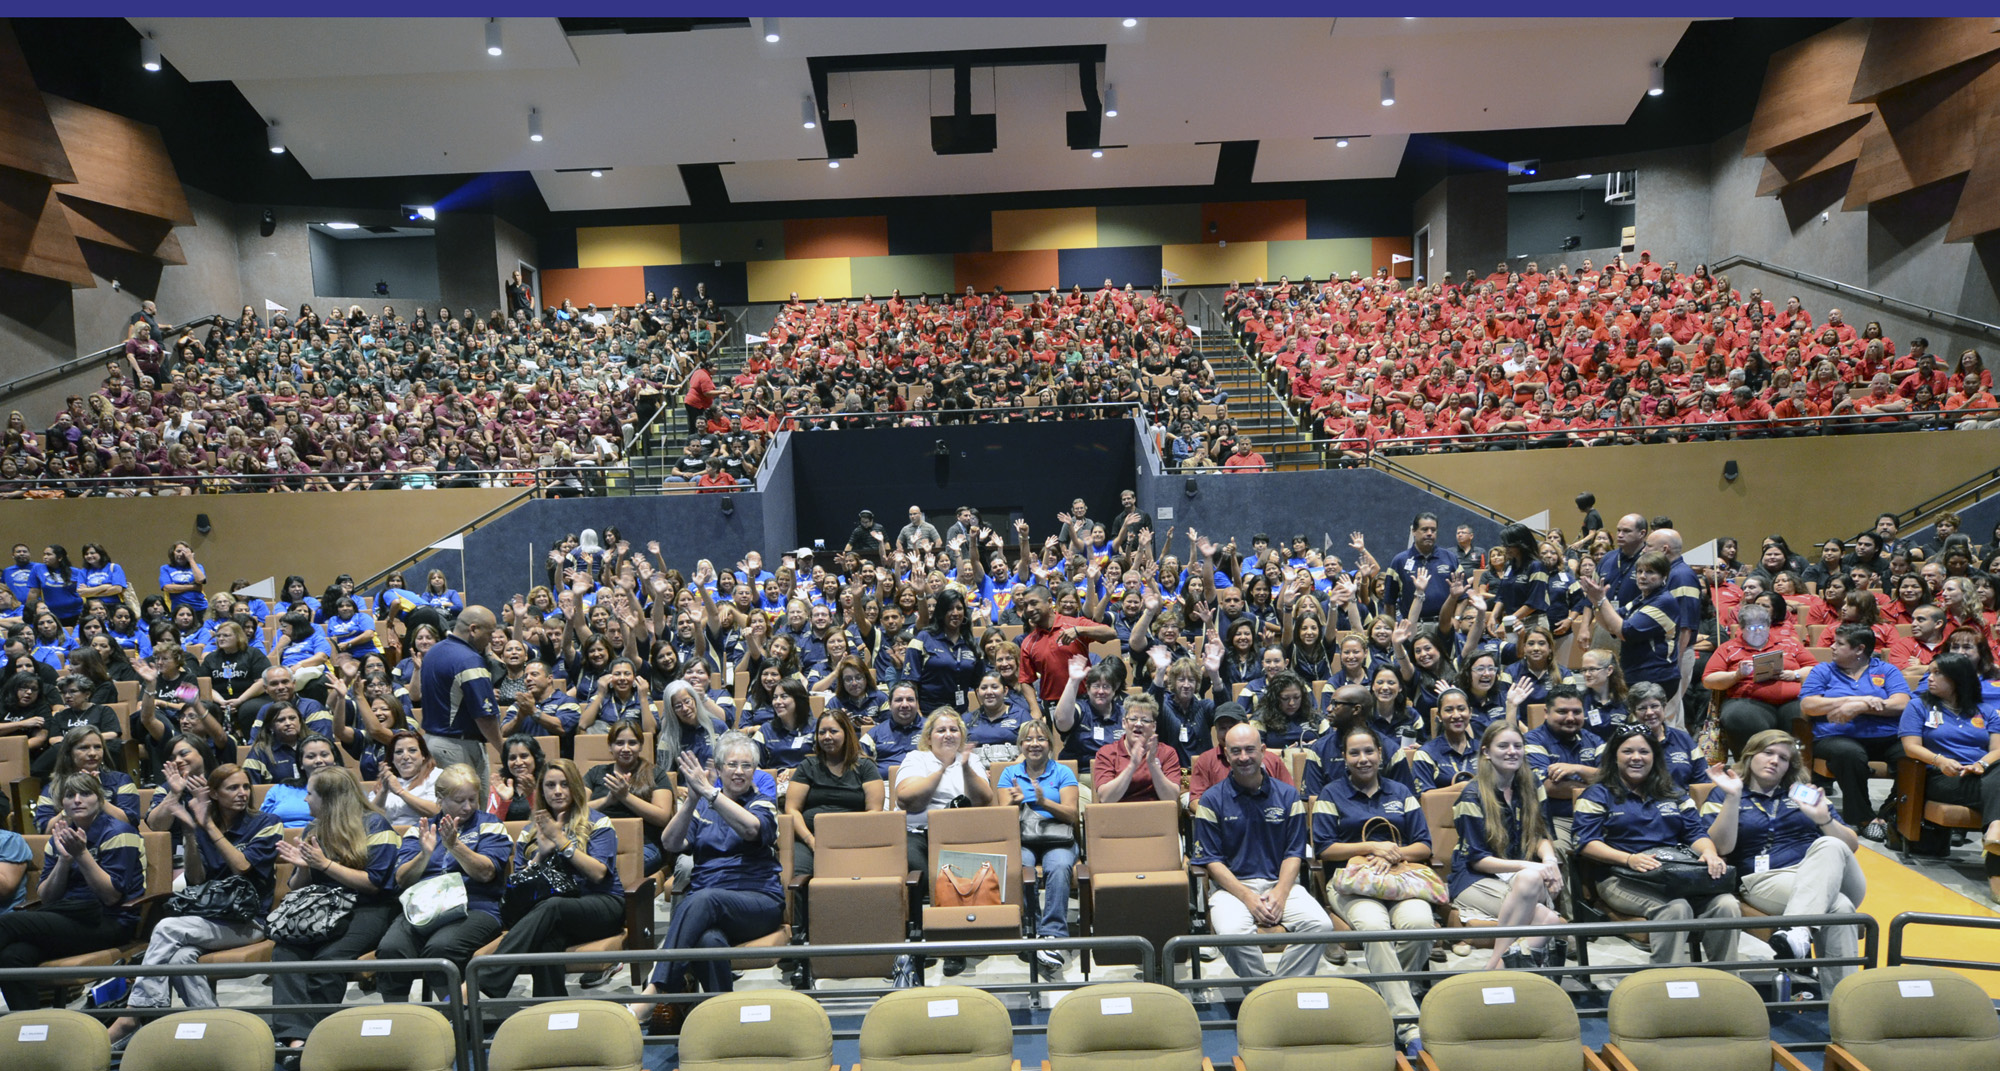 District celebrates new school year at annual Kick-off